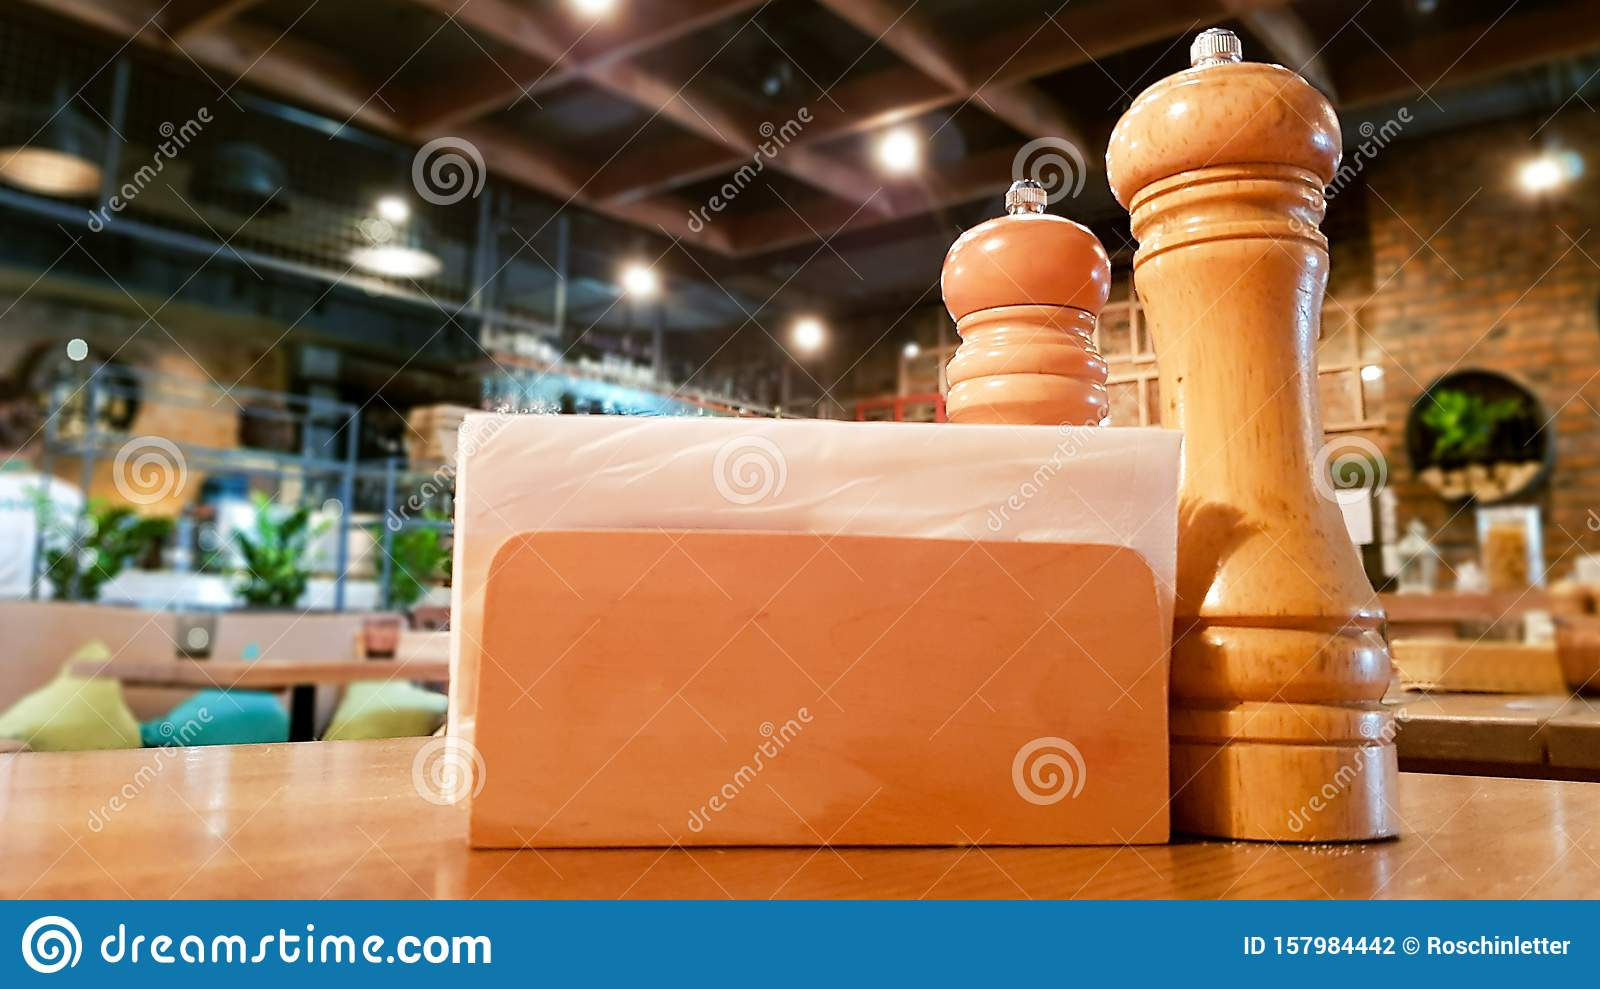 A Table In A Cafe Or Restaurant White Napkins In A Wooden Napkin Holder Spices Salt And Pepper On A Wooden Table Panoramic View Stock Photo Image Of Paper Clean 157984442